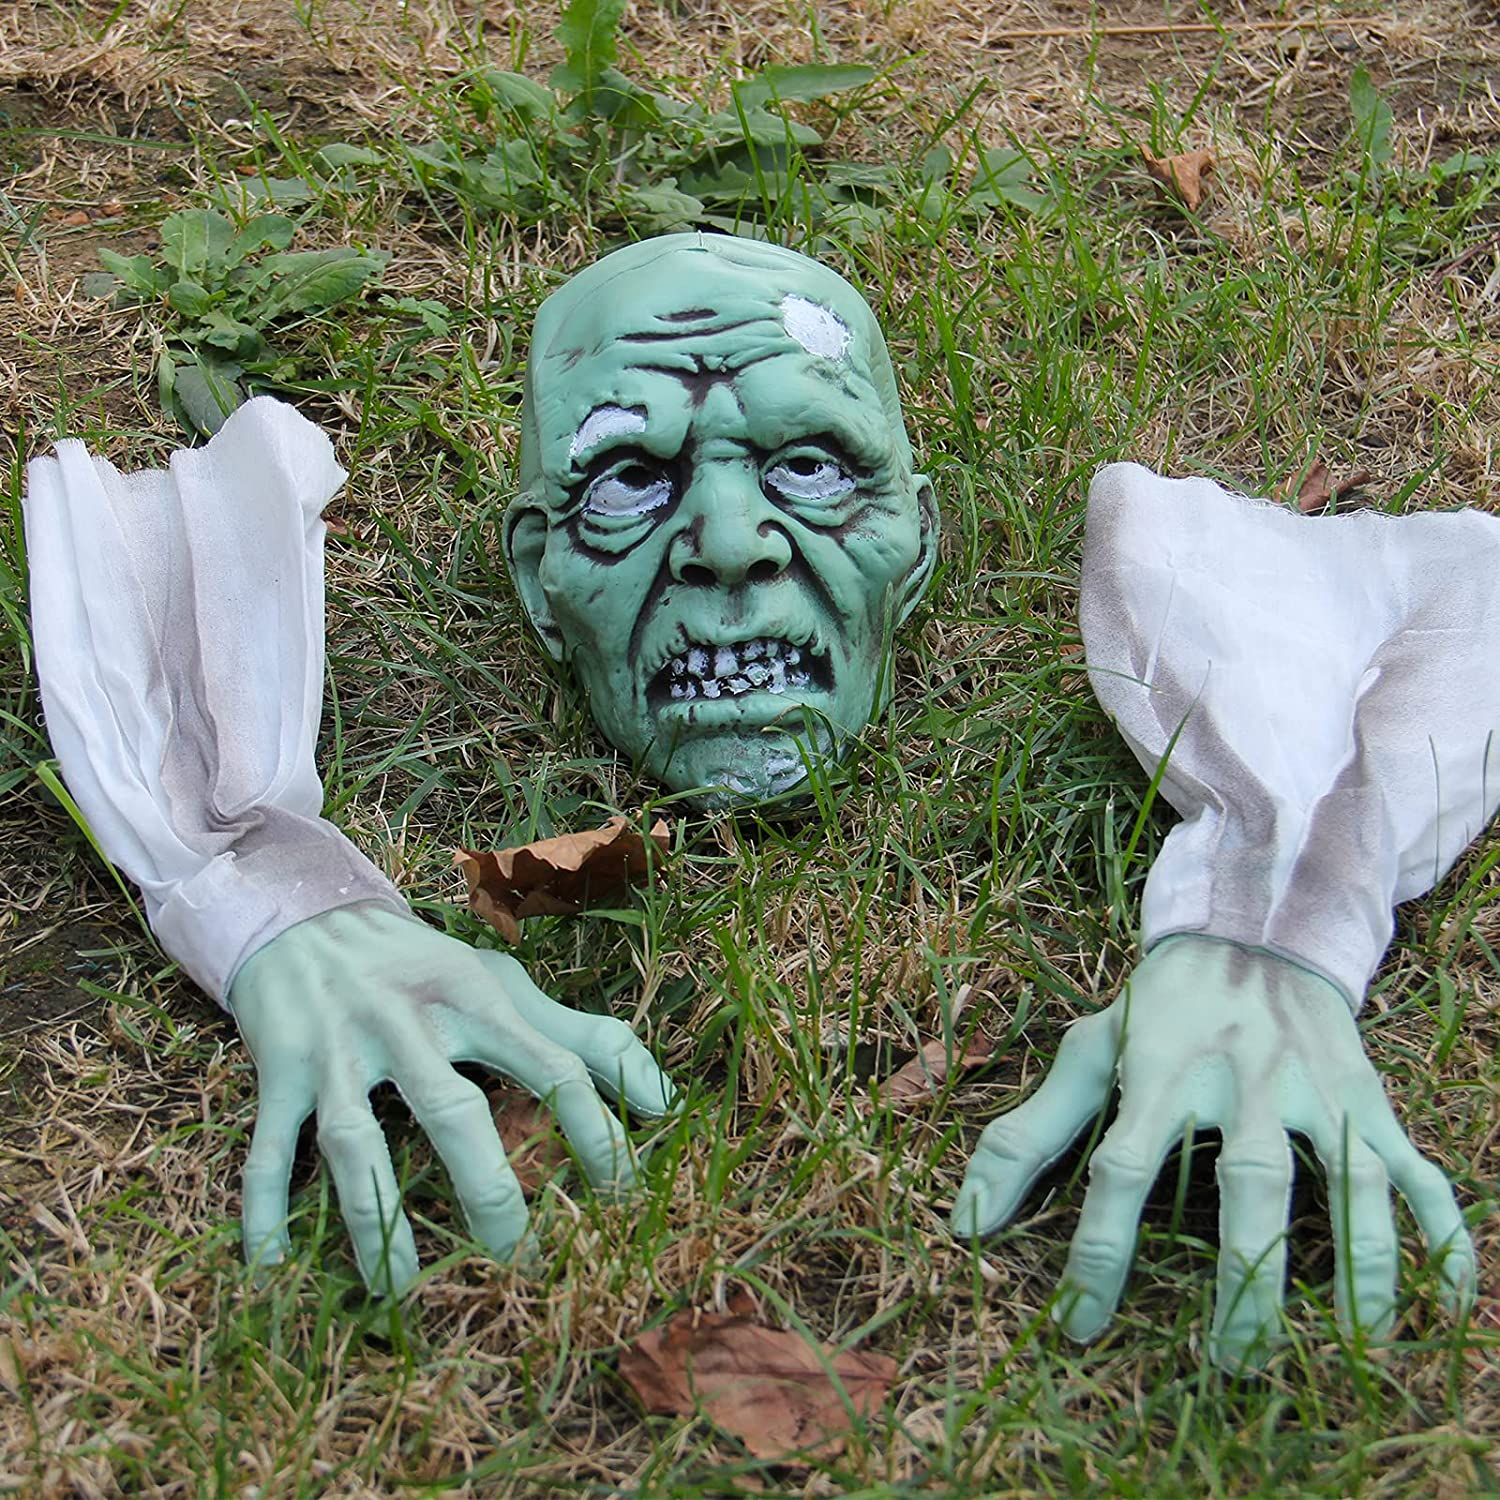 COLMO Halloween Decorations Scary Skeleton Stakes for Stake Max 81% OFF Animer and price revision Lawn